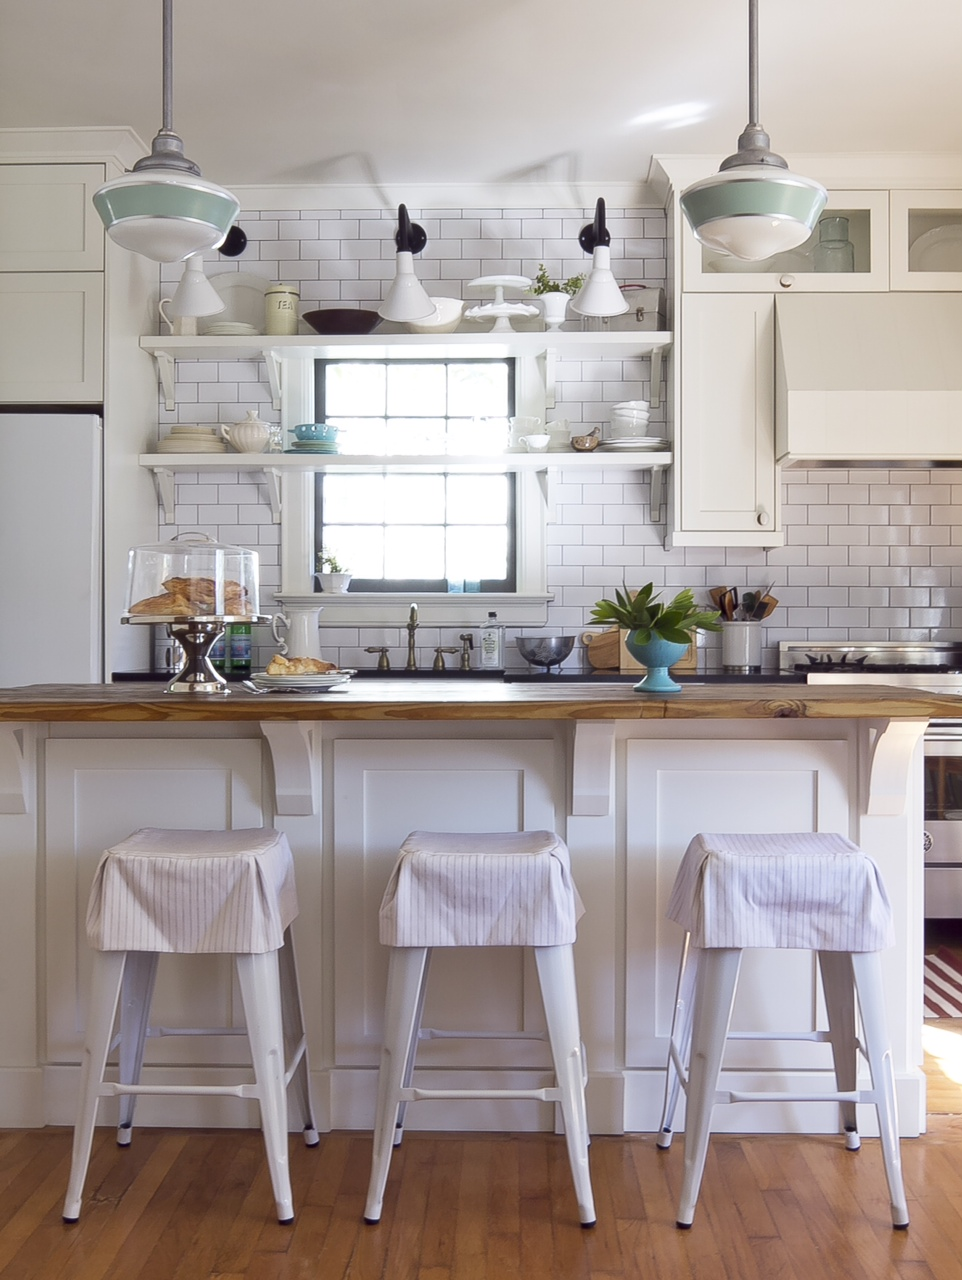 Angle Shades a Risky Rewarding Choice for Decatur Kitchen Reno Blog